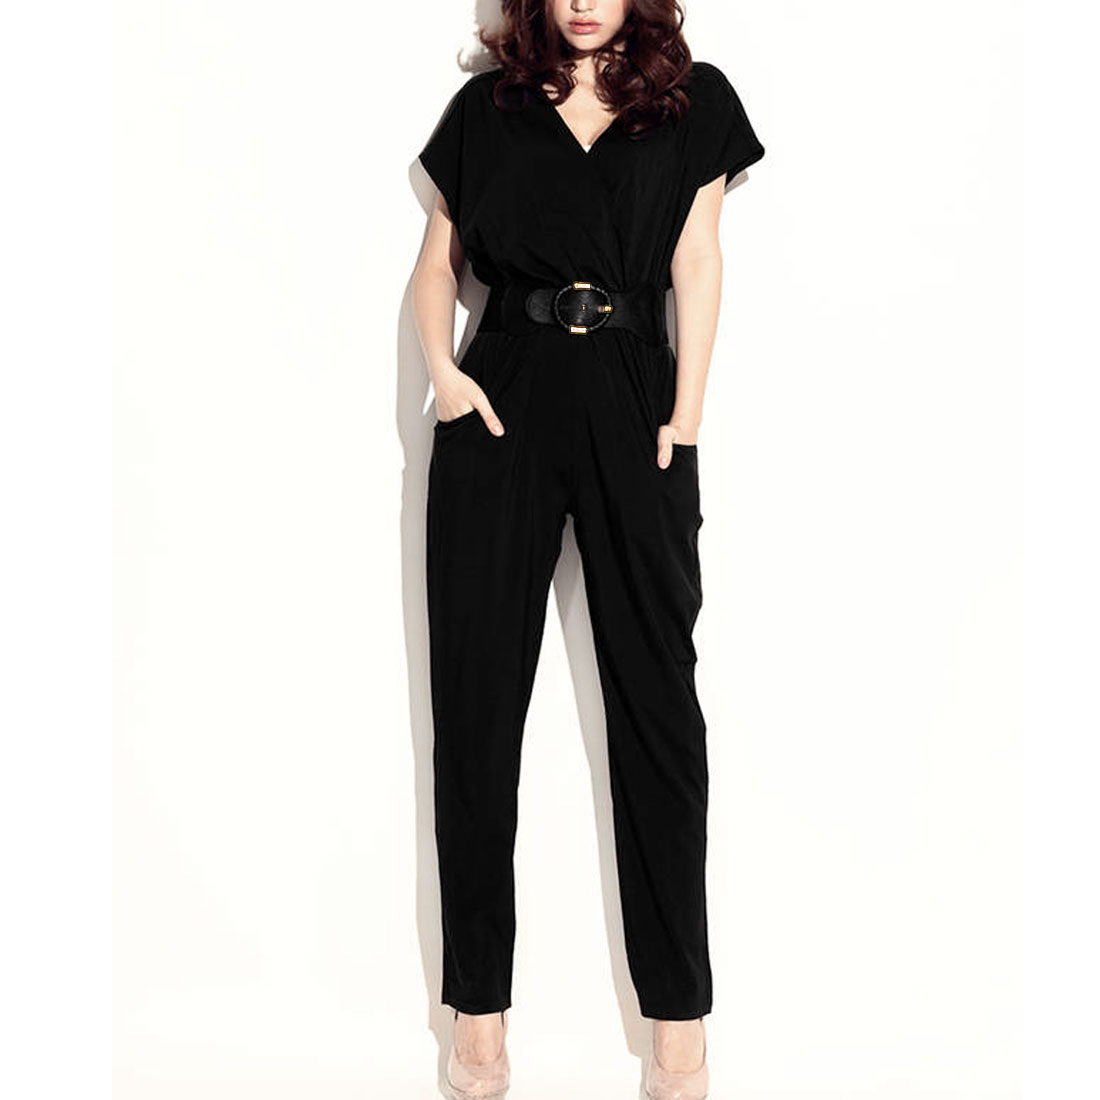 Women Sleeveless Full Length Fashion Jumpsuit Black XS